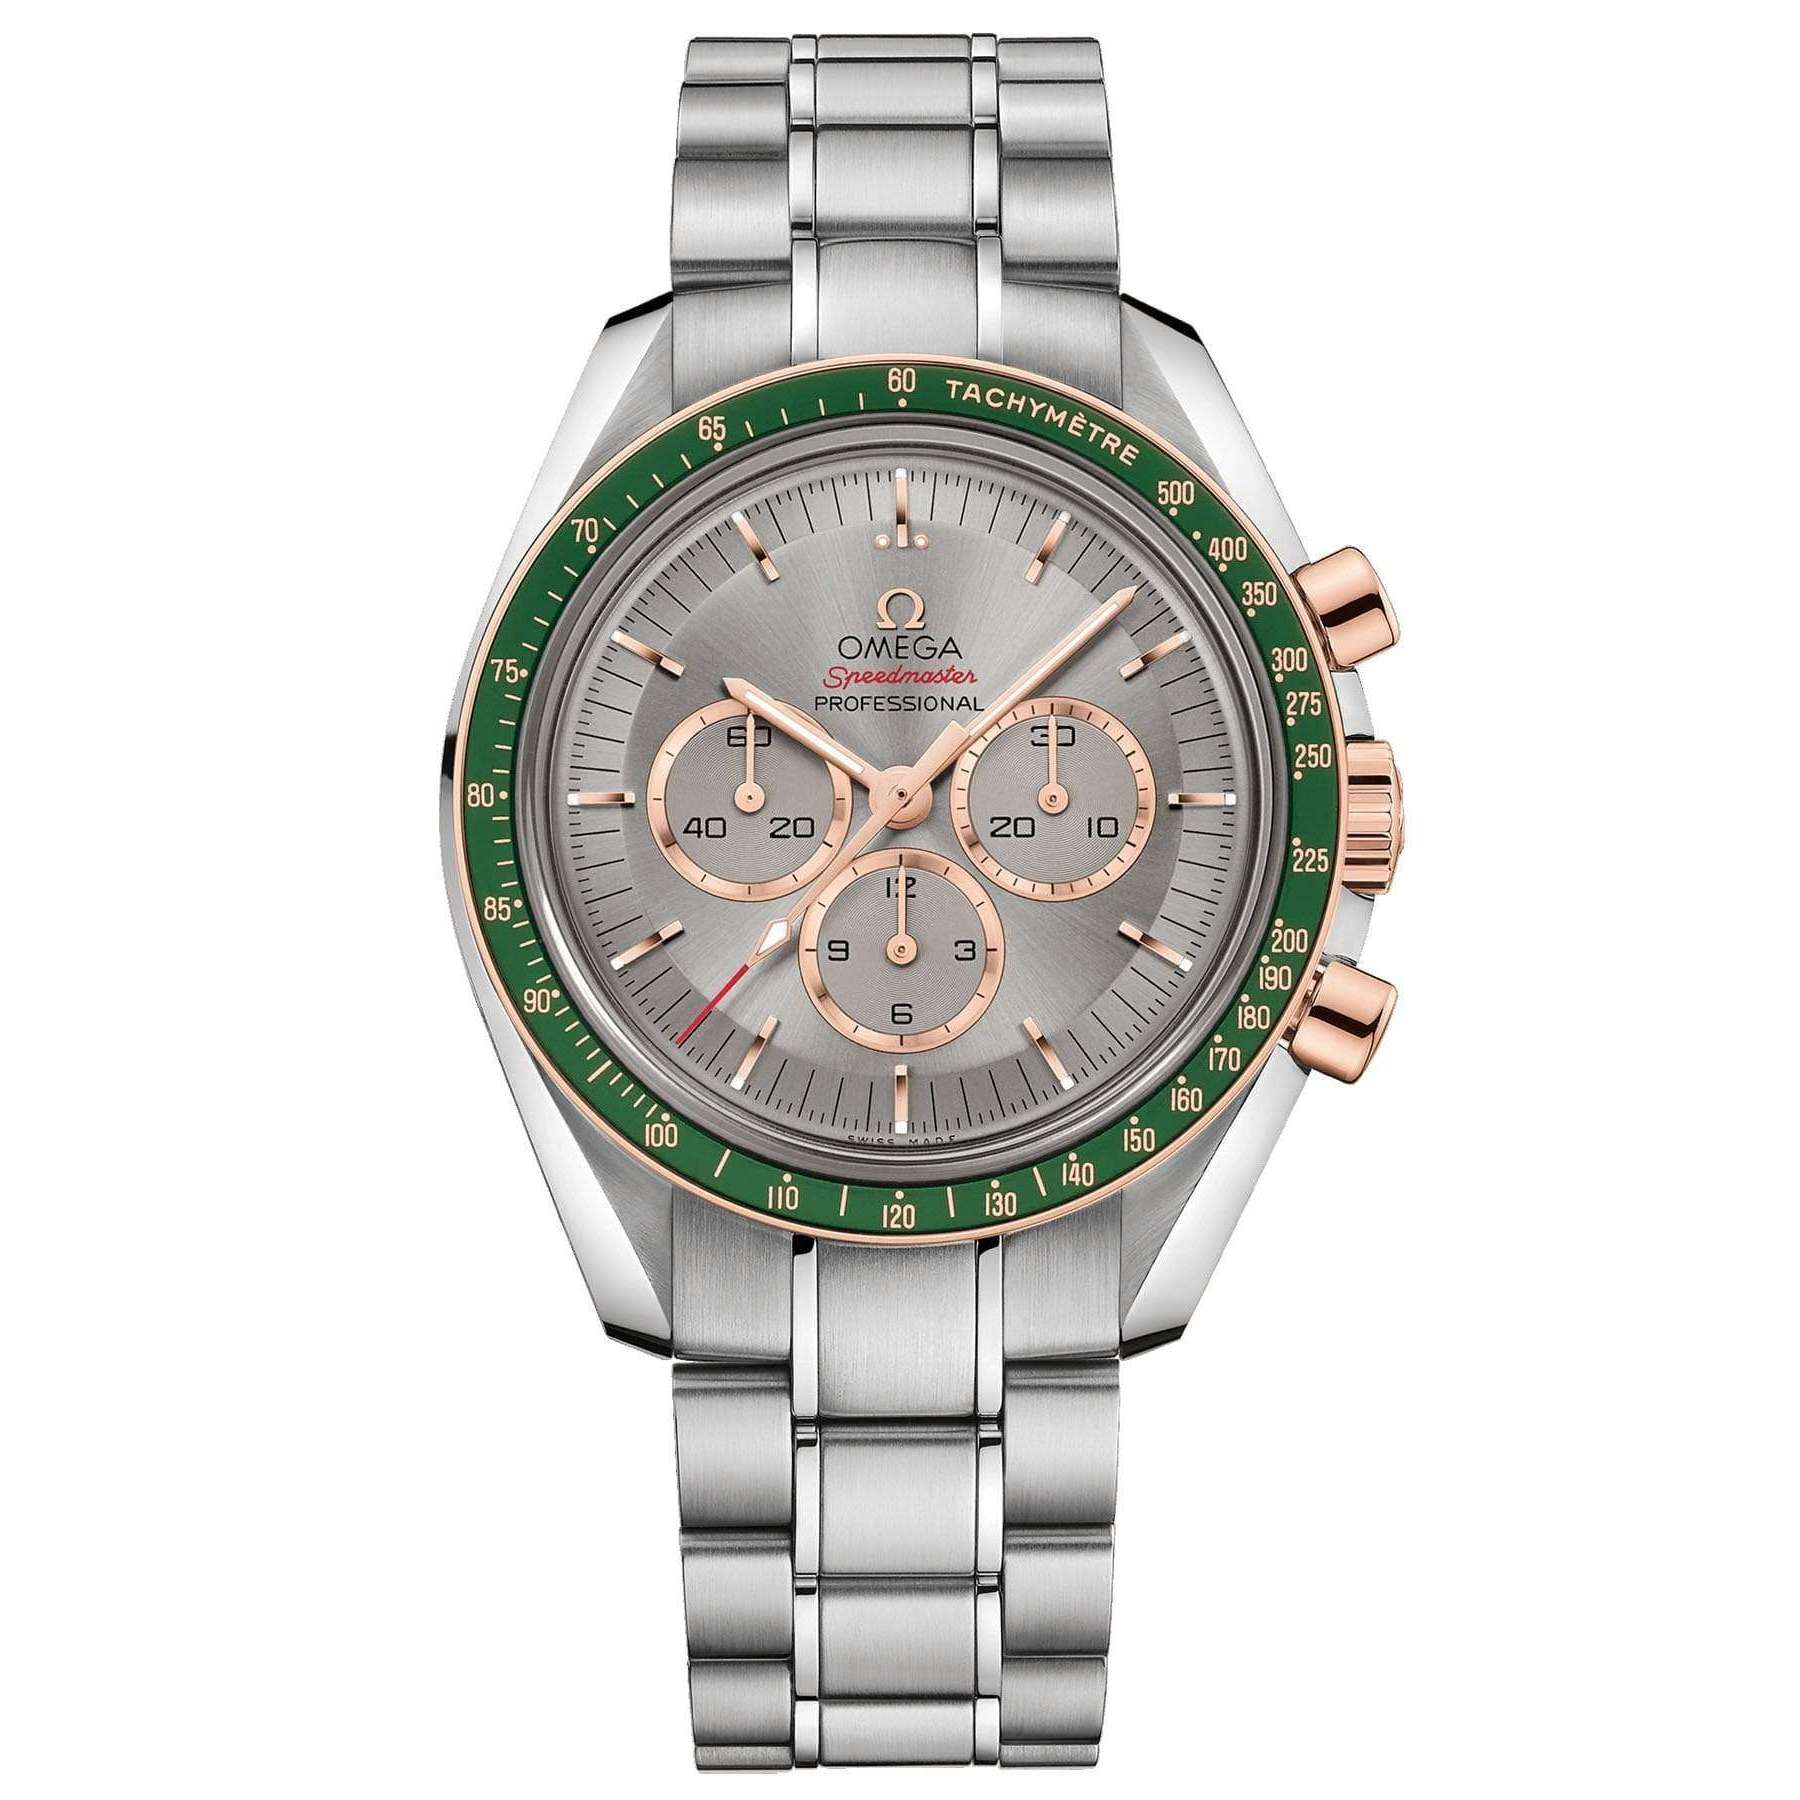 THE NEW OMEGA SPEEDMASTER TOKYO 2020 OLYMPICS COLLECTION Blue-Yellow-Panda-Green-Red